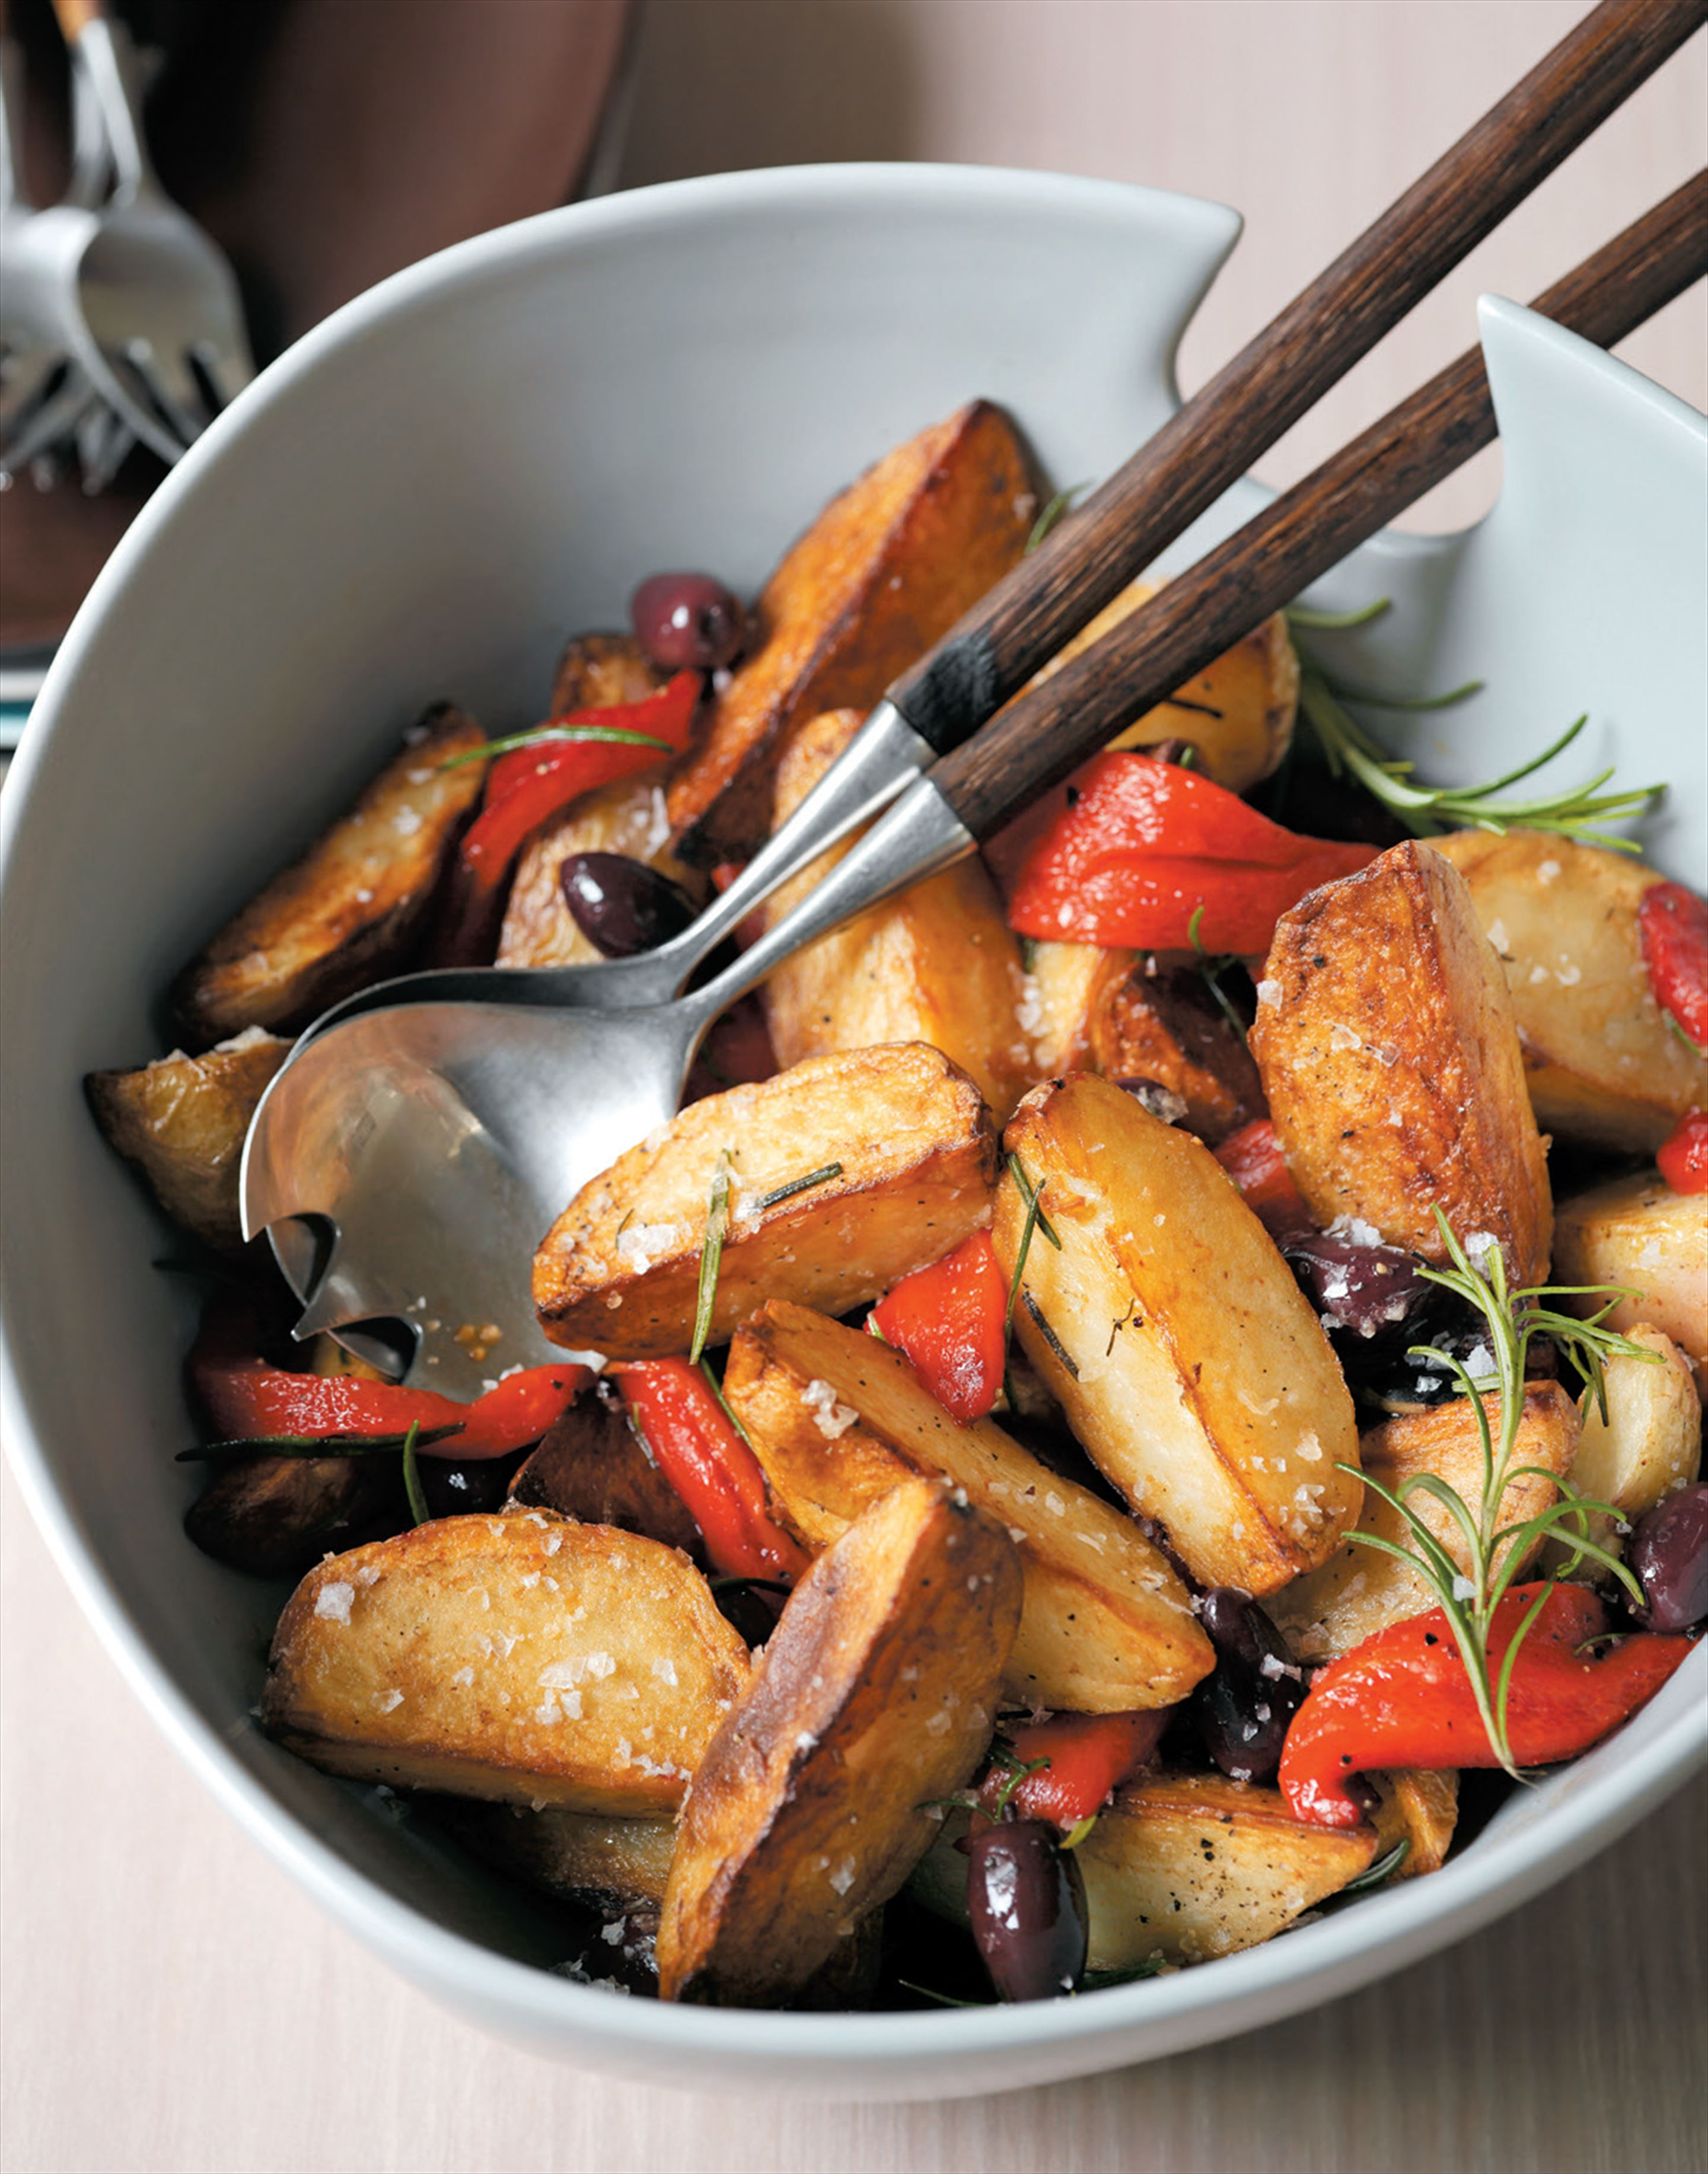 Crispy potatoes with roasted capsicum